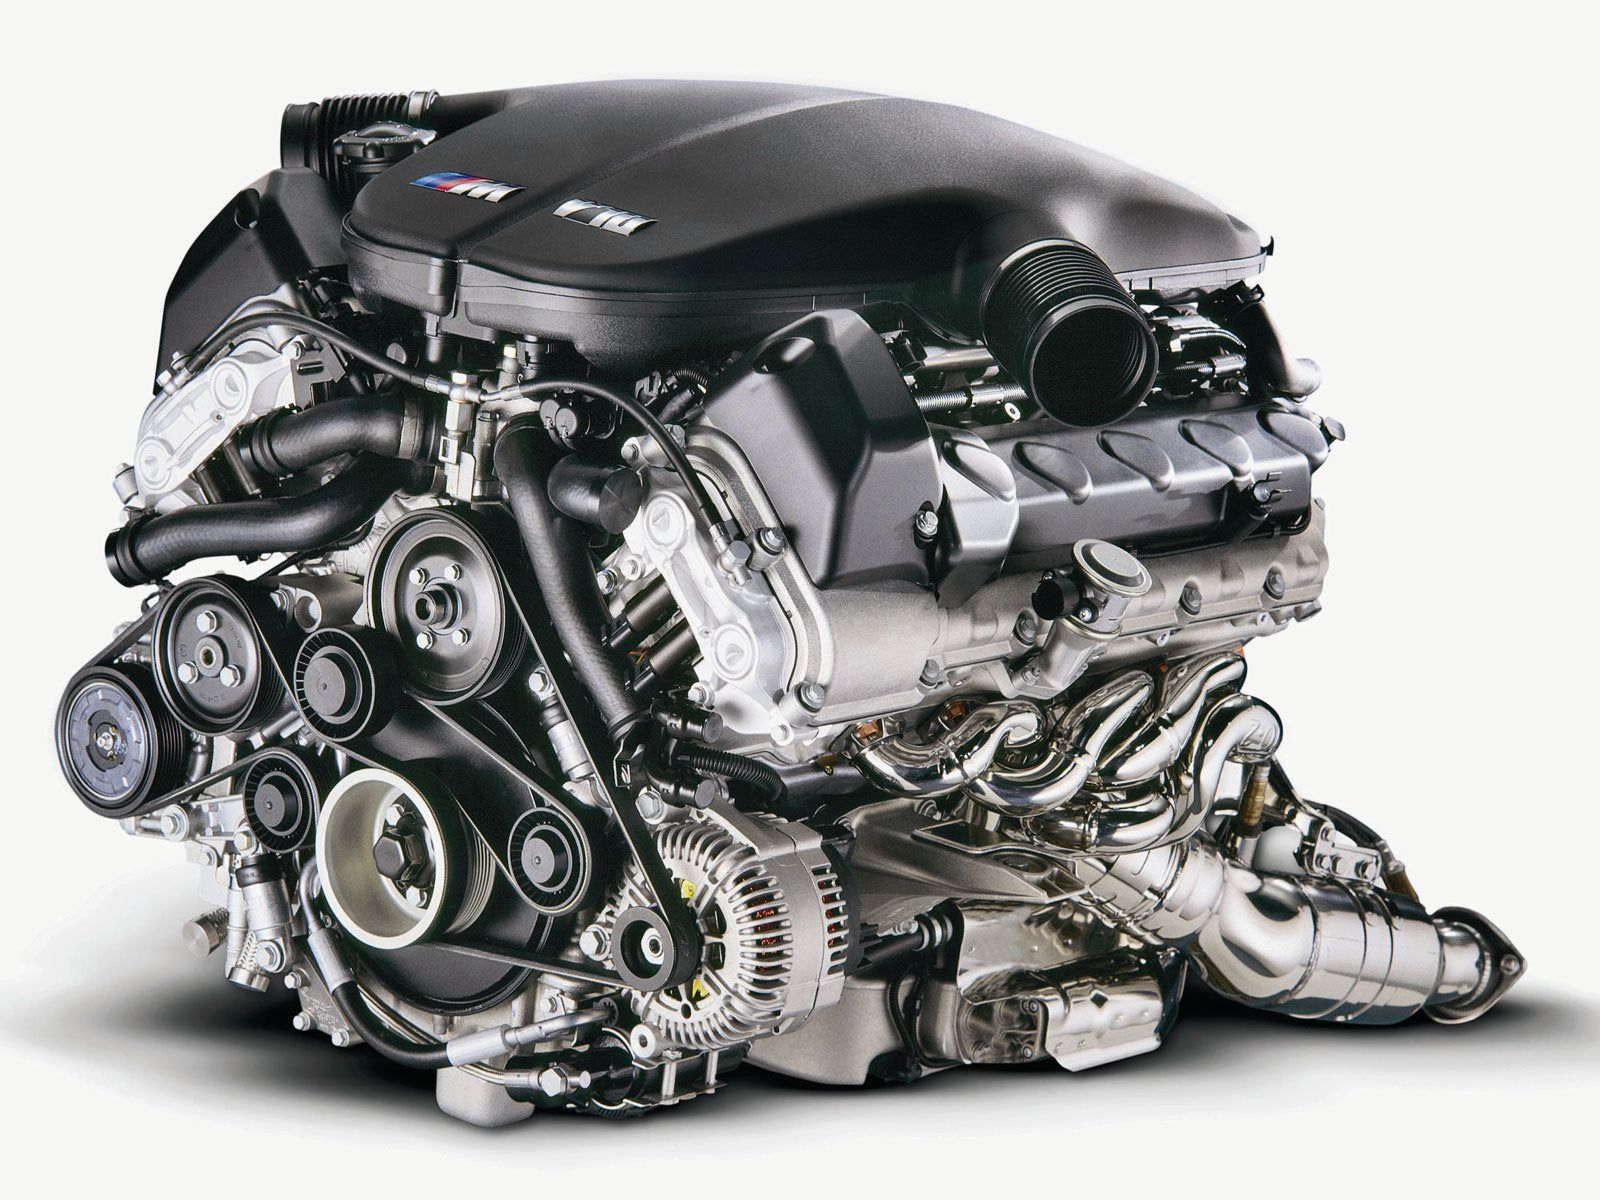 7 Times Engine Of The Year Award For The Bmw V10 Top Speed Bmw Engines Used Bmw V10 Engine